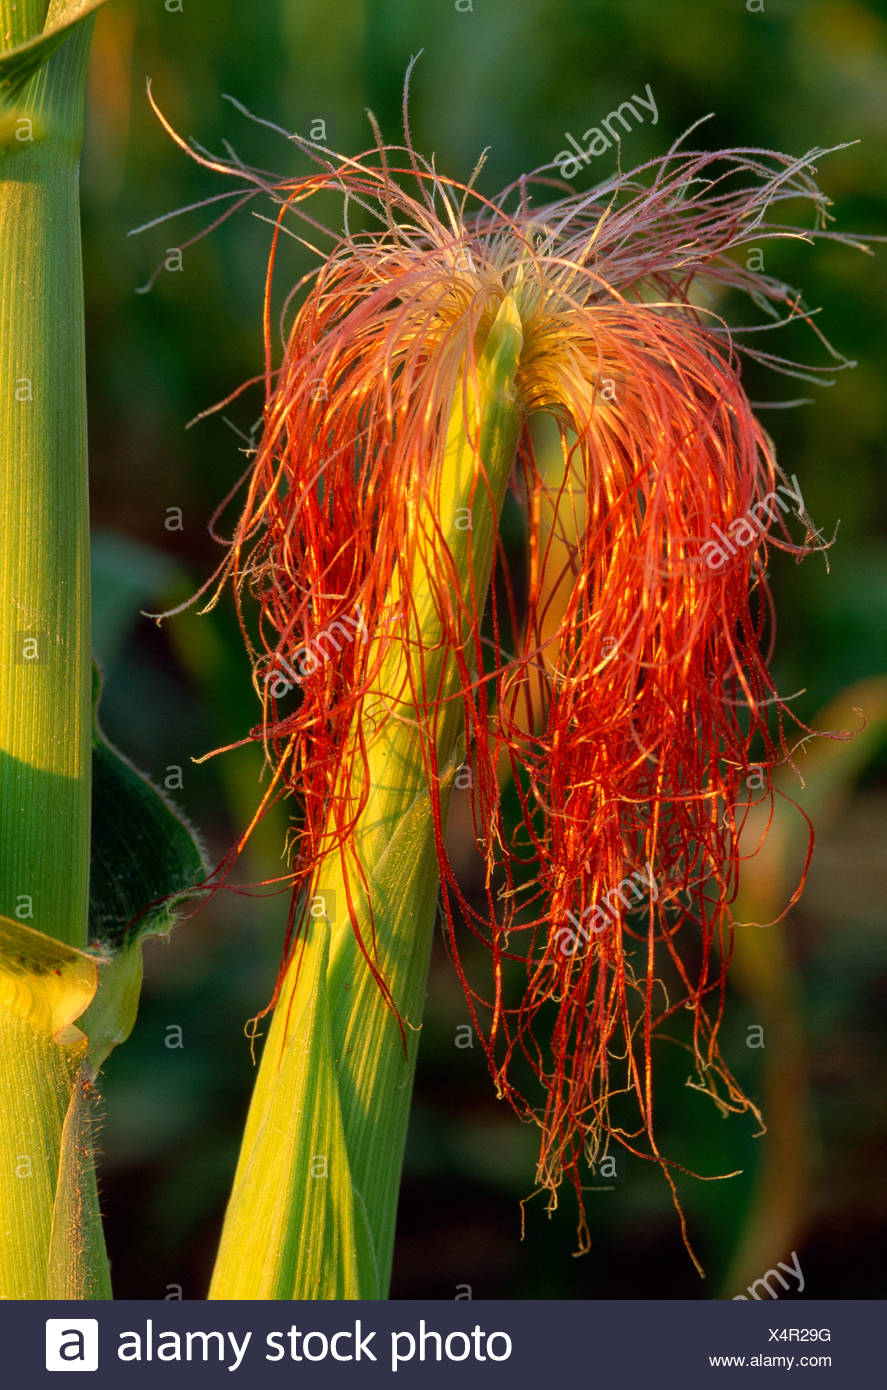 Agriculture - Closeup of an ear of grain corn showing the emerging pollen collecting red silks in the early growth stage / Iowa. - Stock Image